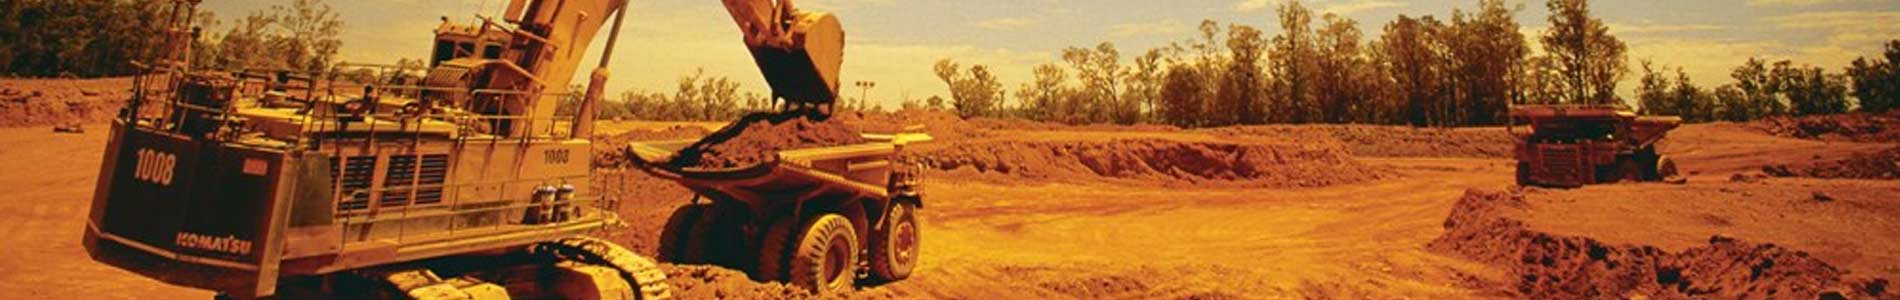 Mining iron ore dump truck and loader operations